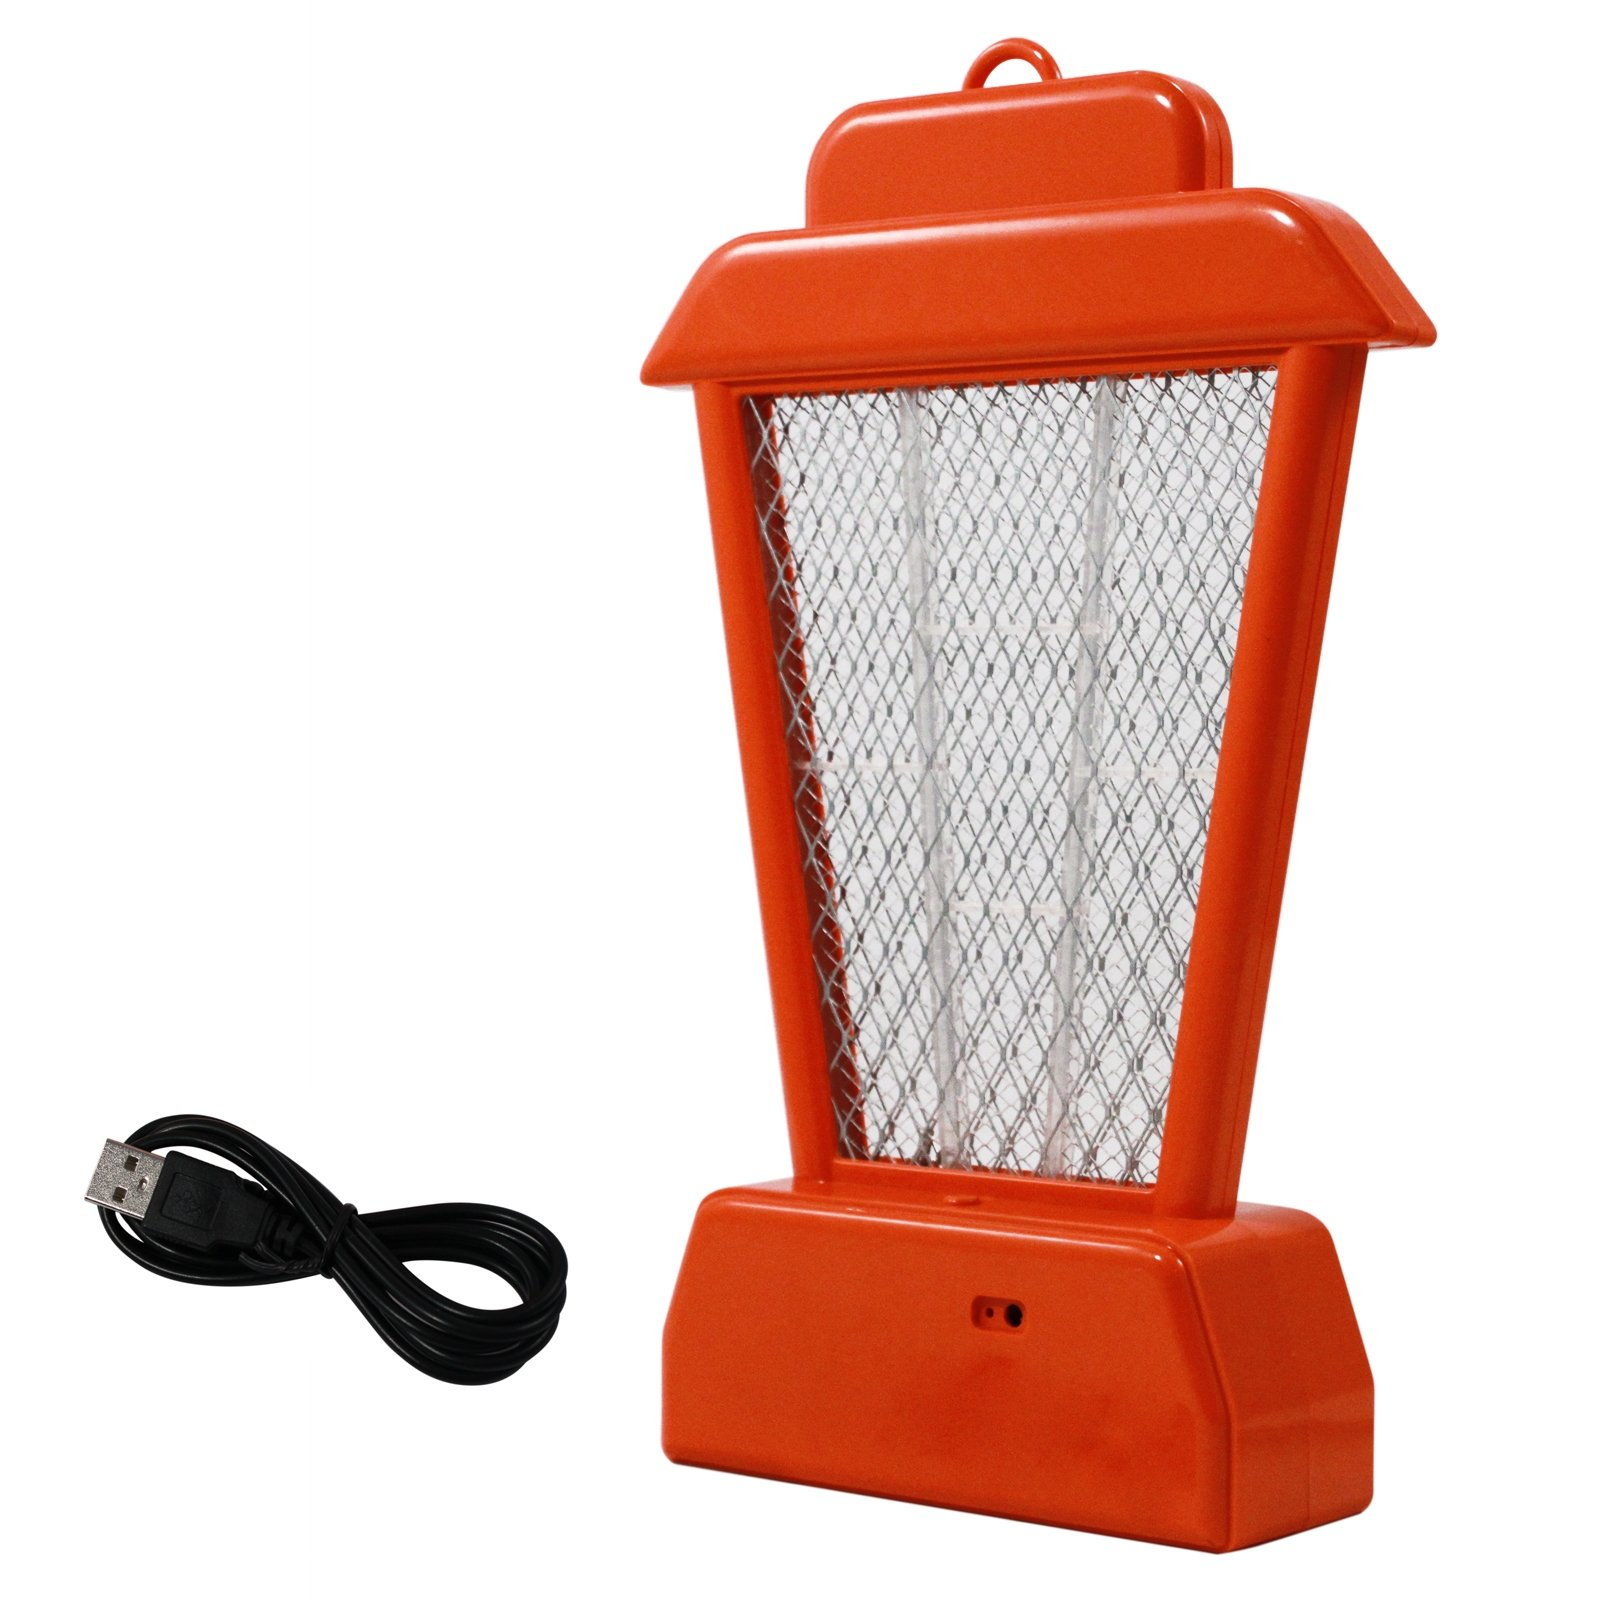 ASR Outdoor 11.5 Inch Rechargeable UV Hanging Bug Zapper Bright Orange Stand